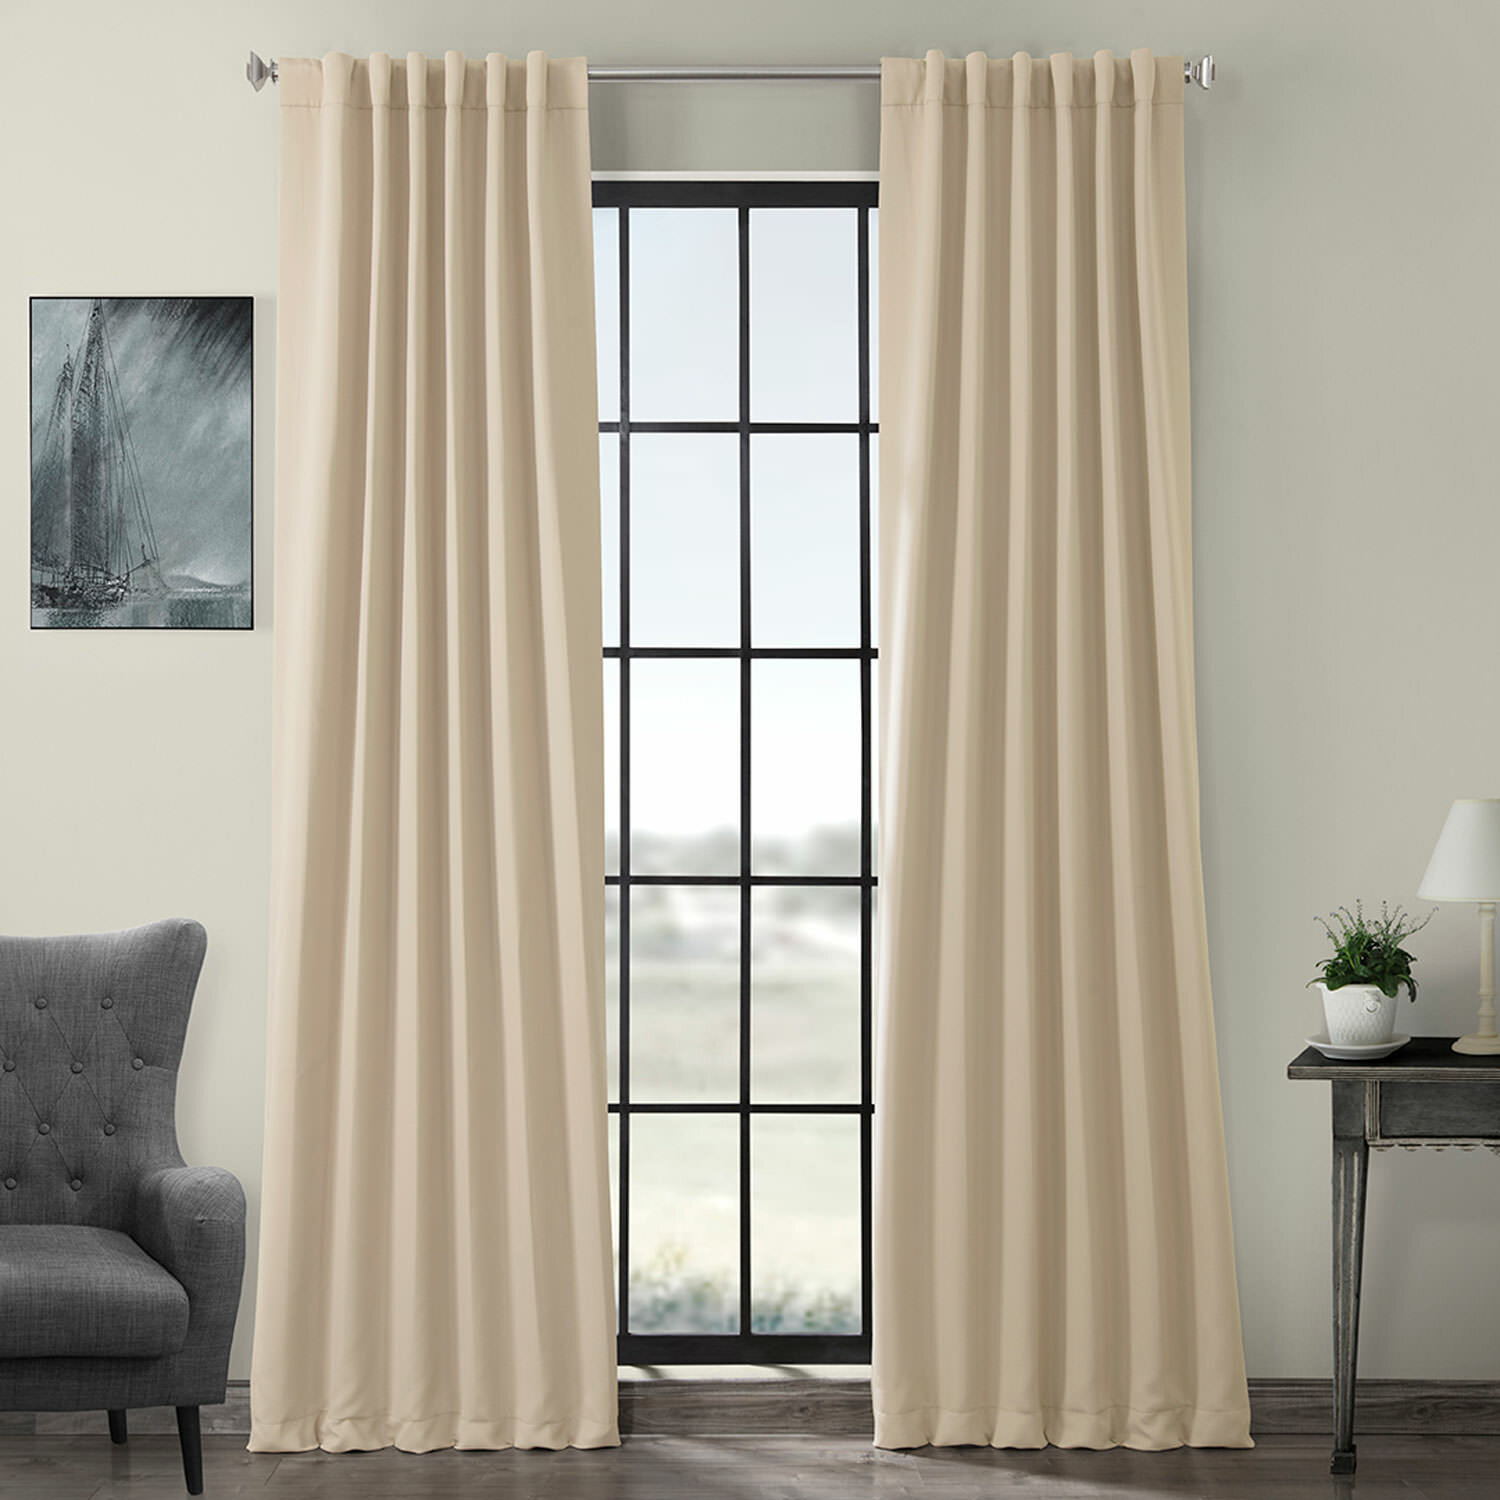 Rustic Curtains Drapes You Ll Love In 2021 Wayfair